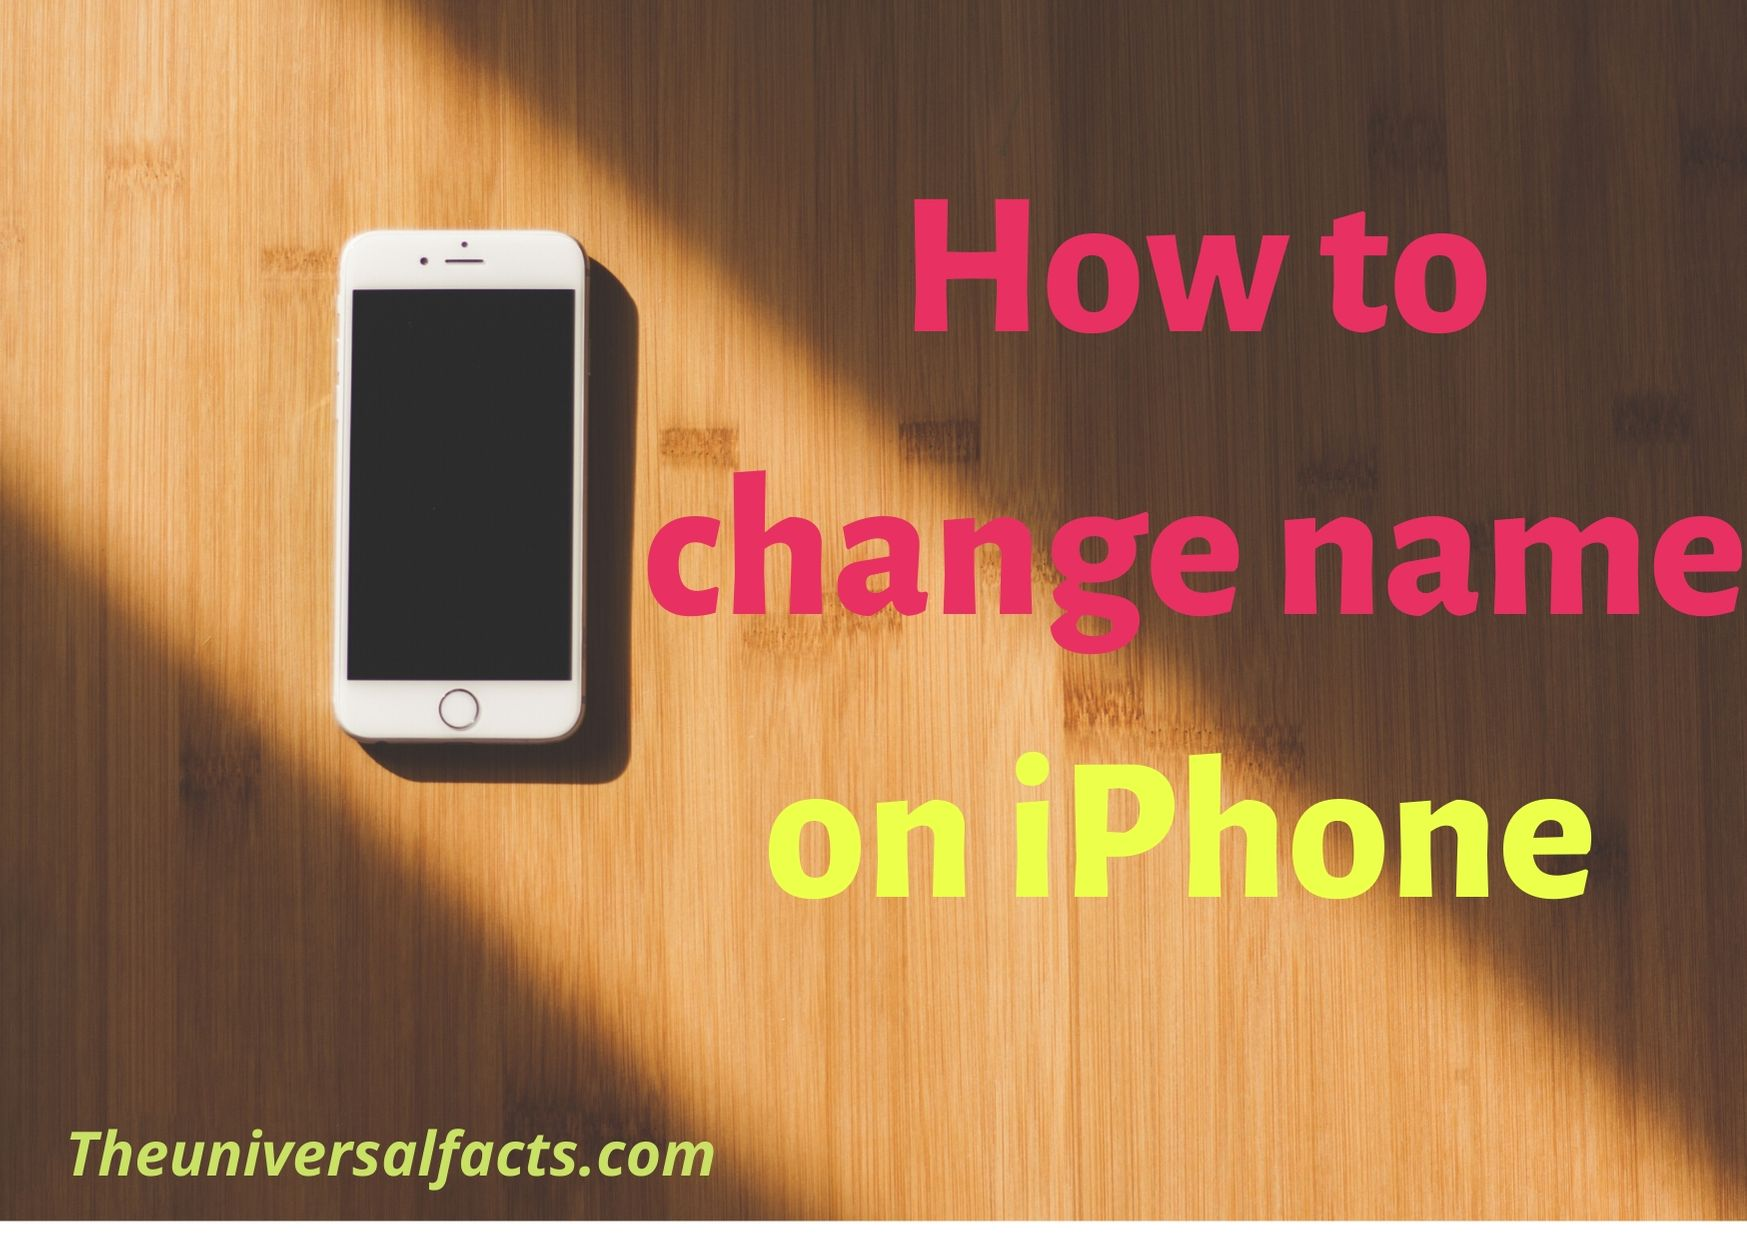 How to change name on iPhone